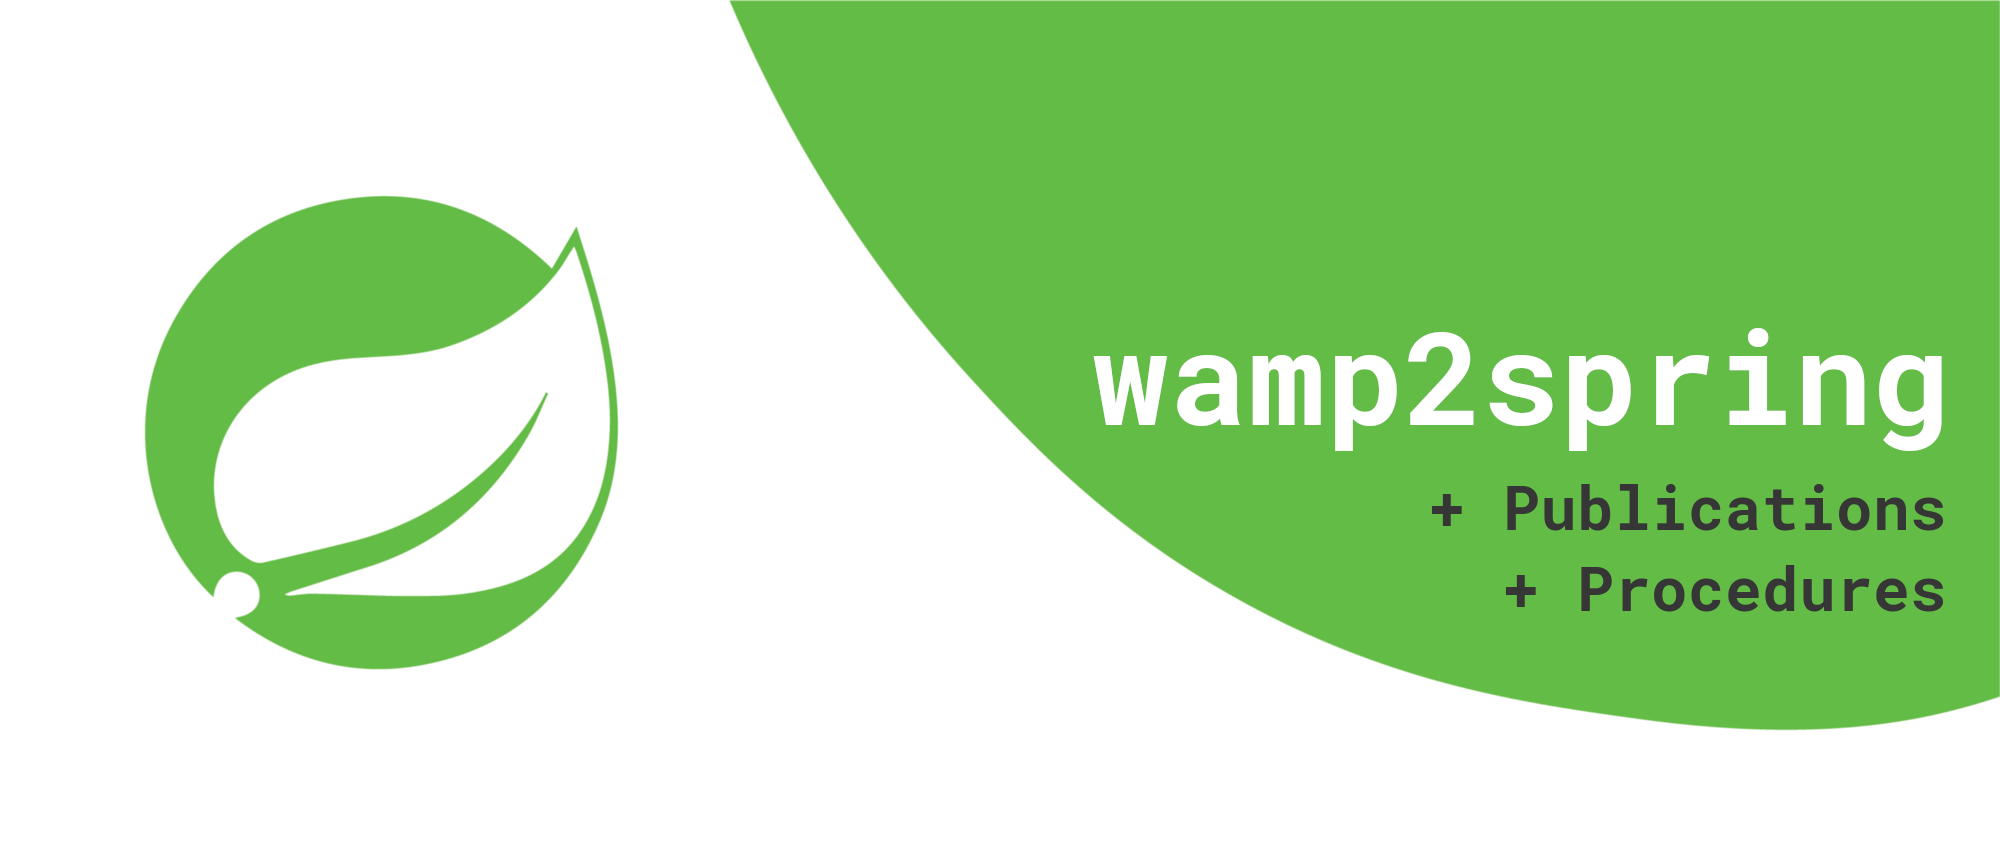 wamp2spring serves as a WAMP router and could register remote procedures and publish on topics.